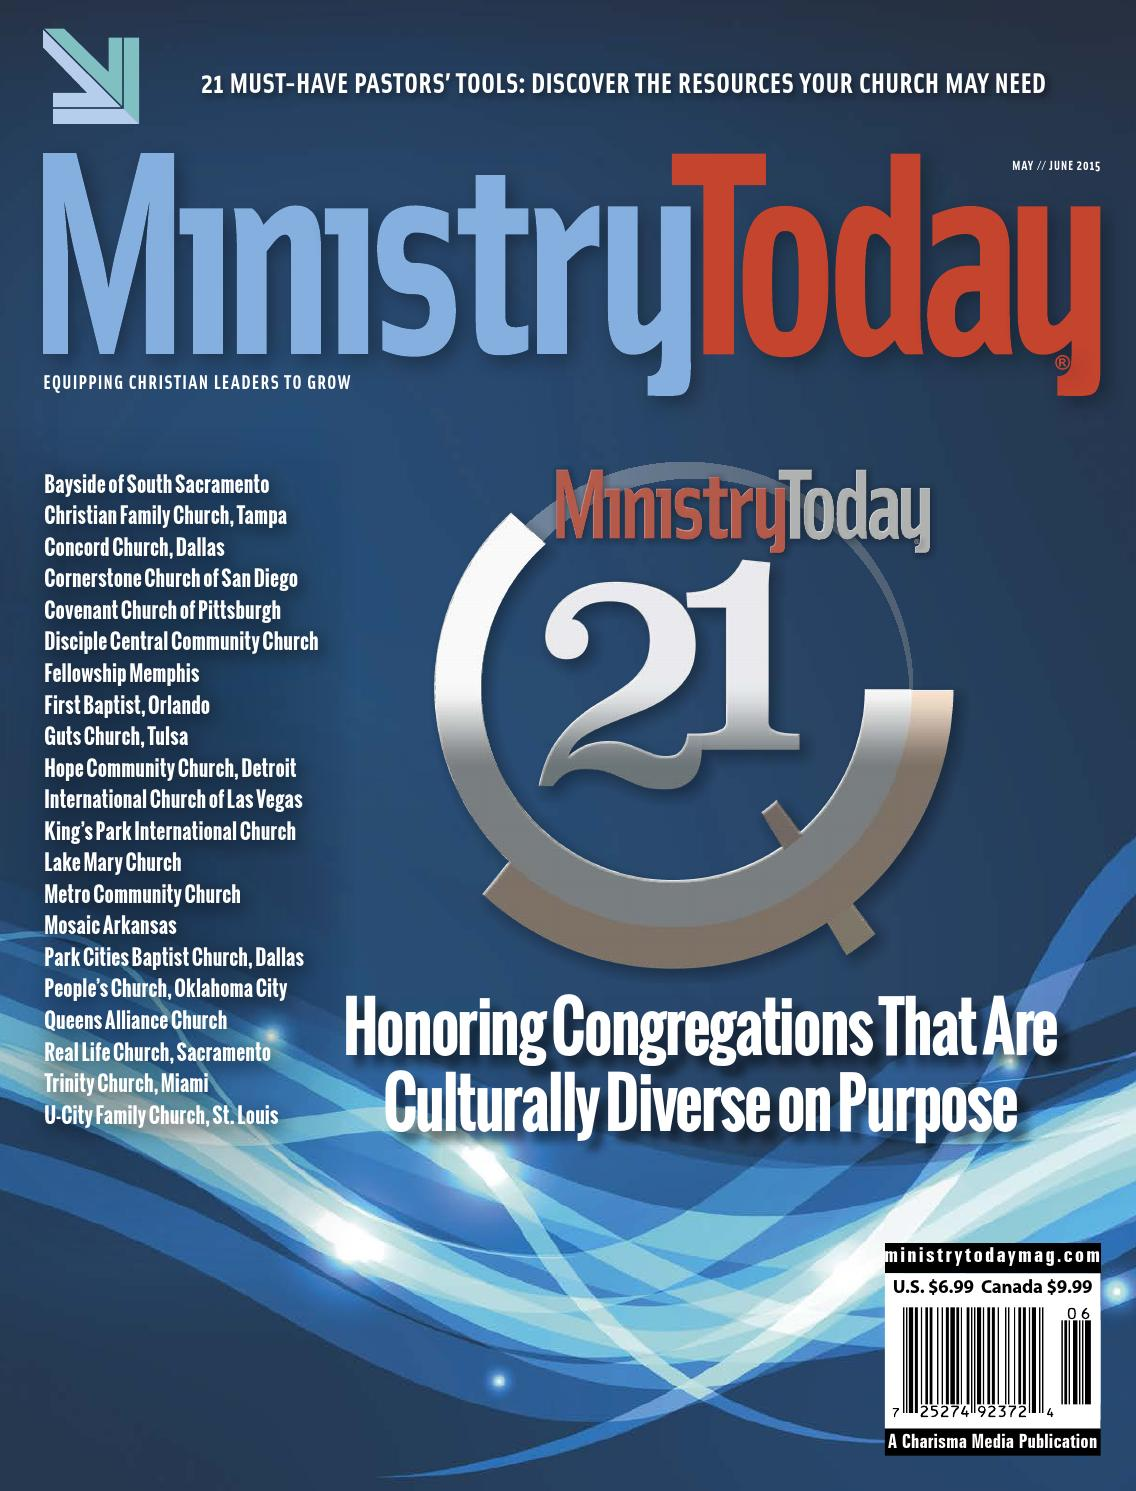 Ministry Today May/June 2015 by Charisma Media - issuu